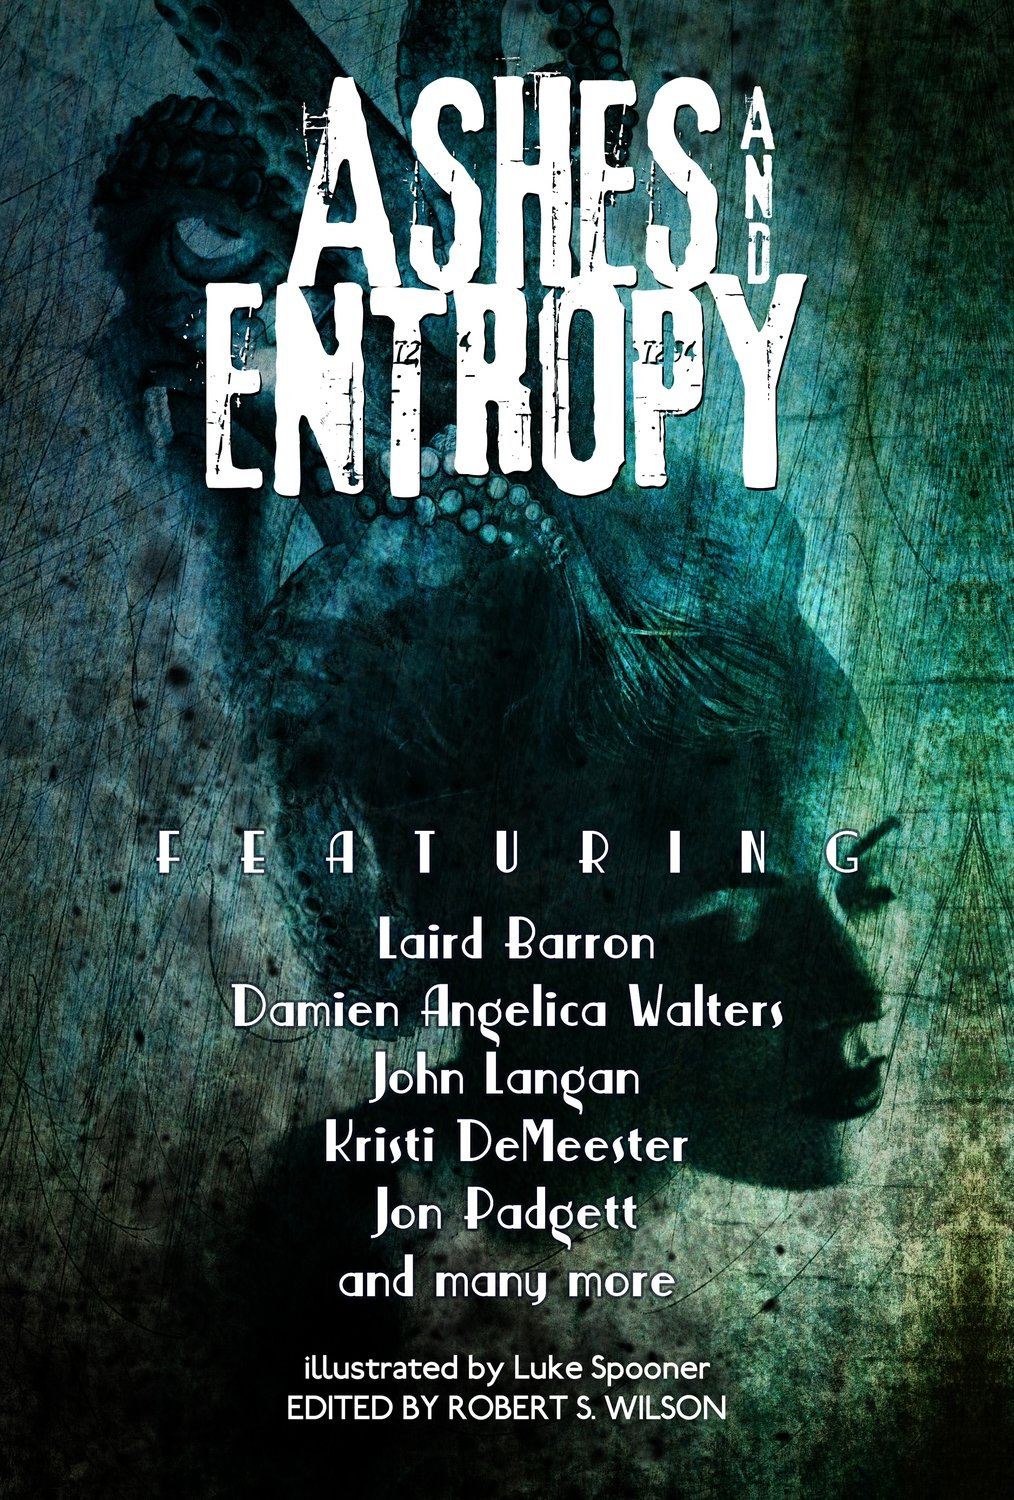 Ashes and Entropy edited by Robert S. Wilson (Trade Paperback)